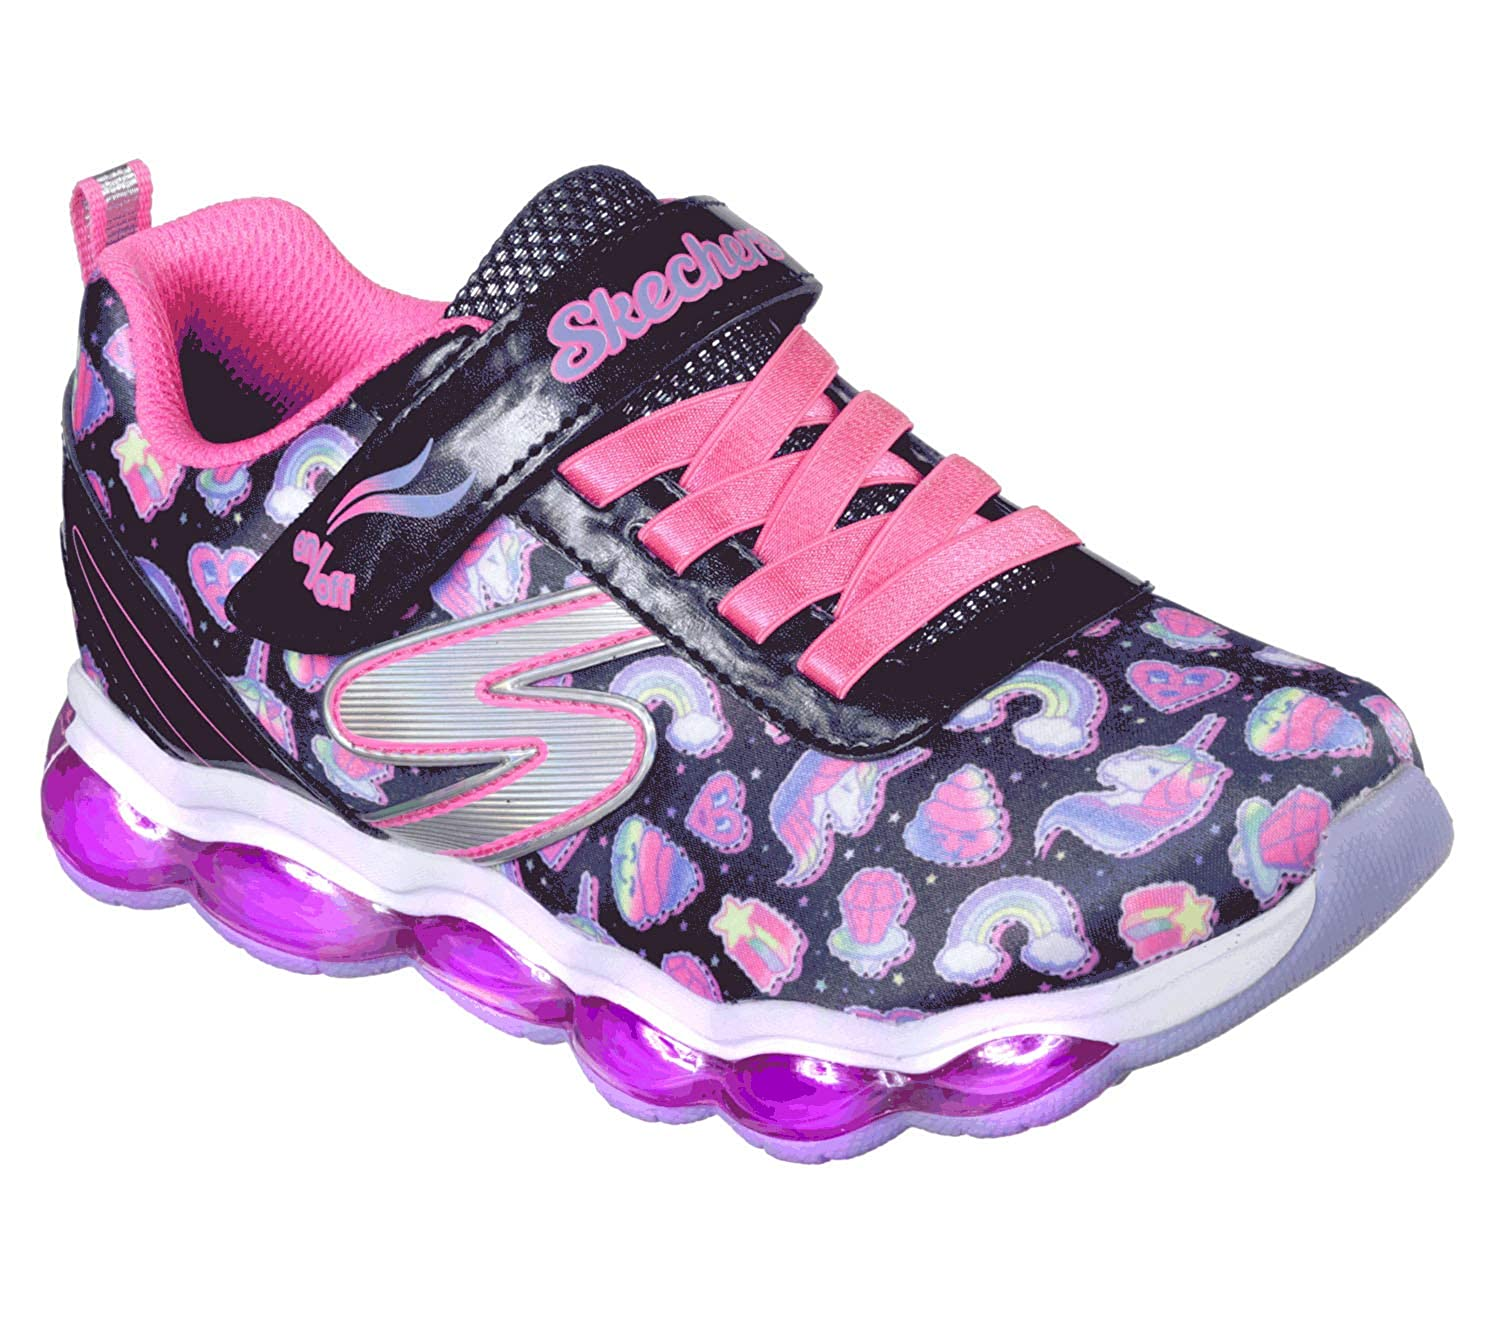 Skechers Kids' Glimmer Lights Sparkle Dreams Sneaker